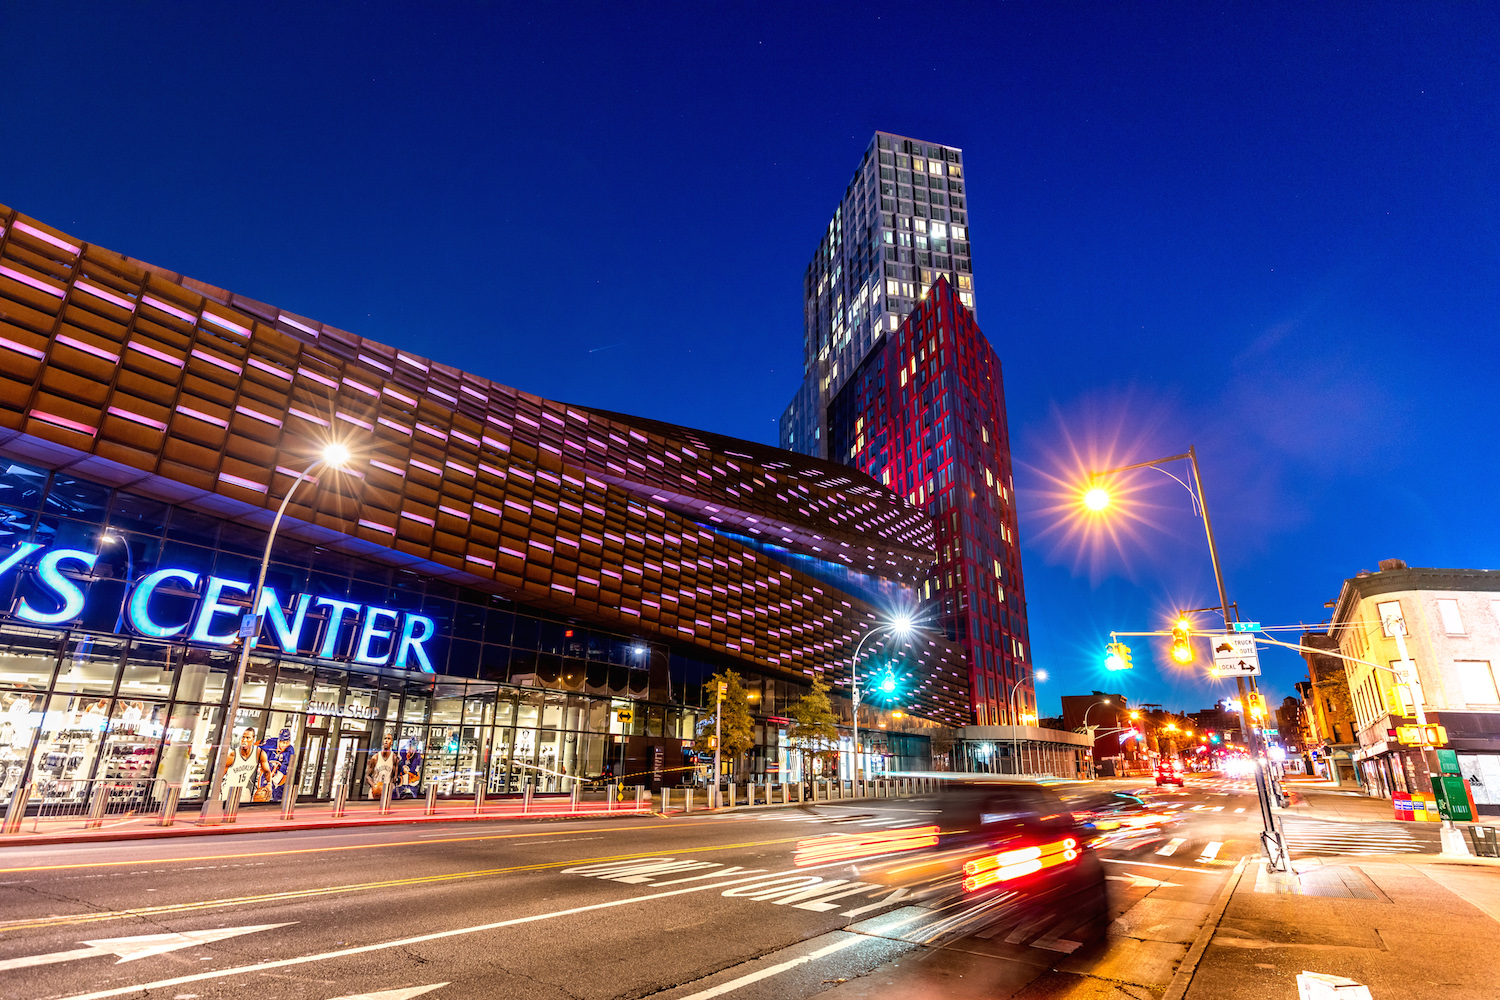 Night-time view of the Barclays Center and 461 Dean Street.